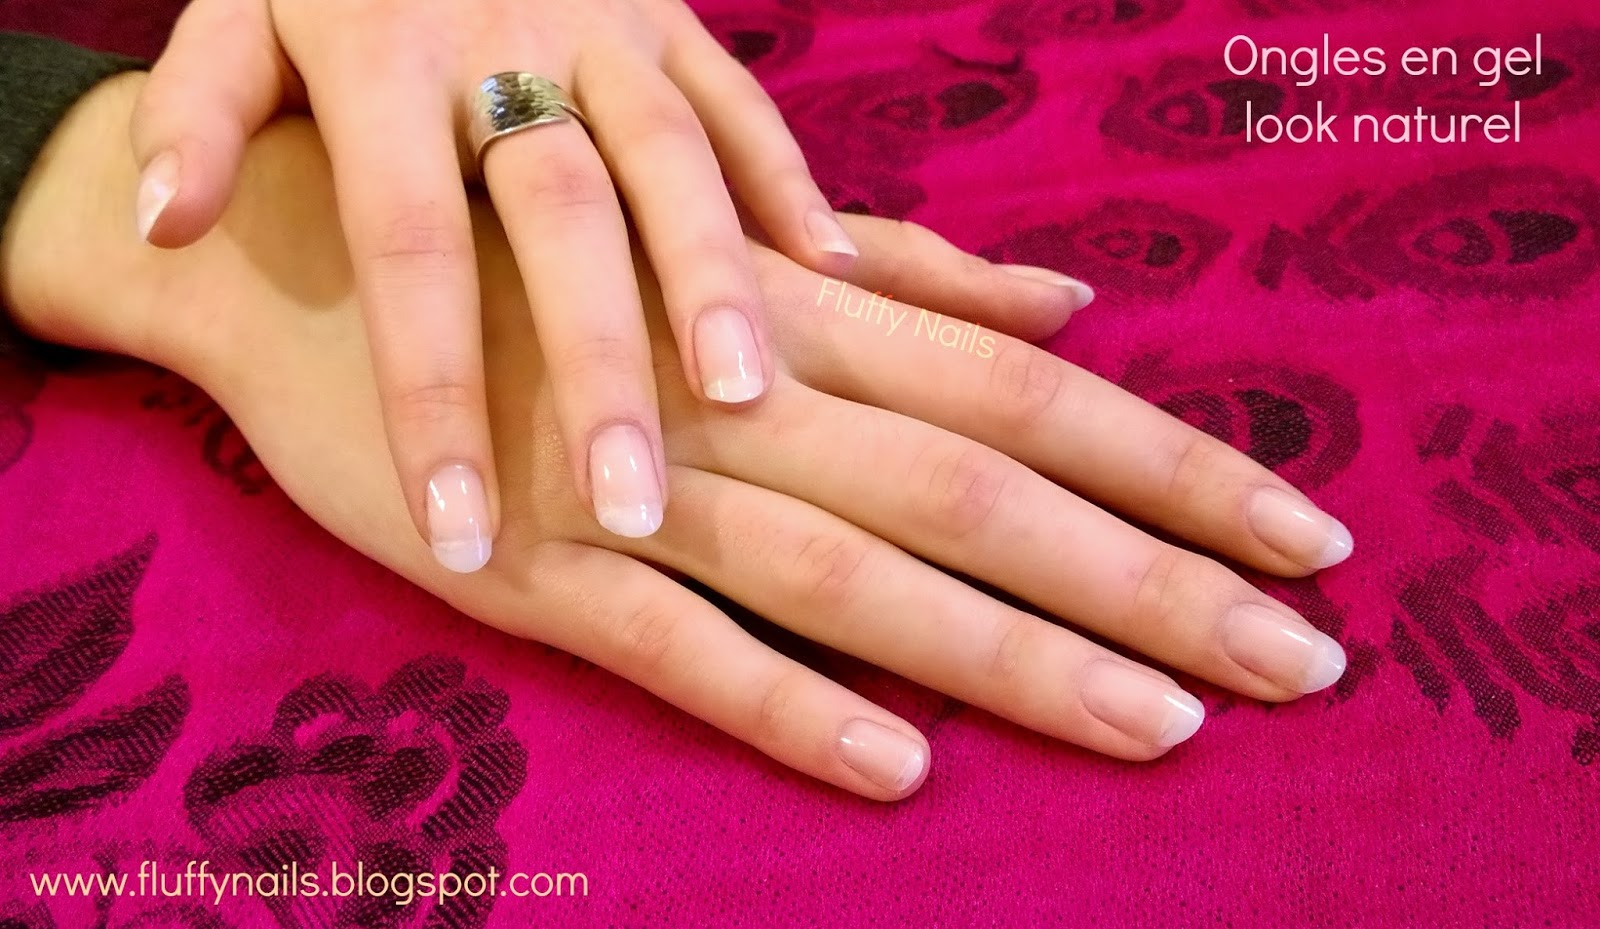 Ongles en gel rallongement capsule look naturel